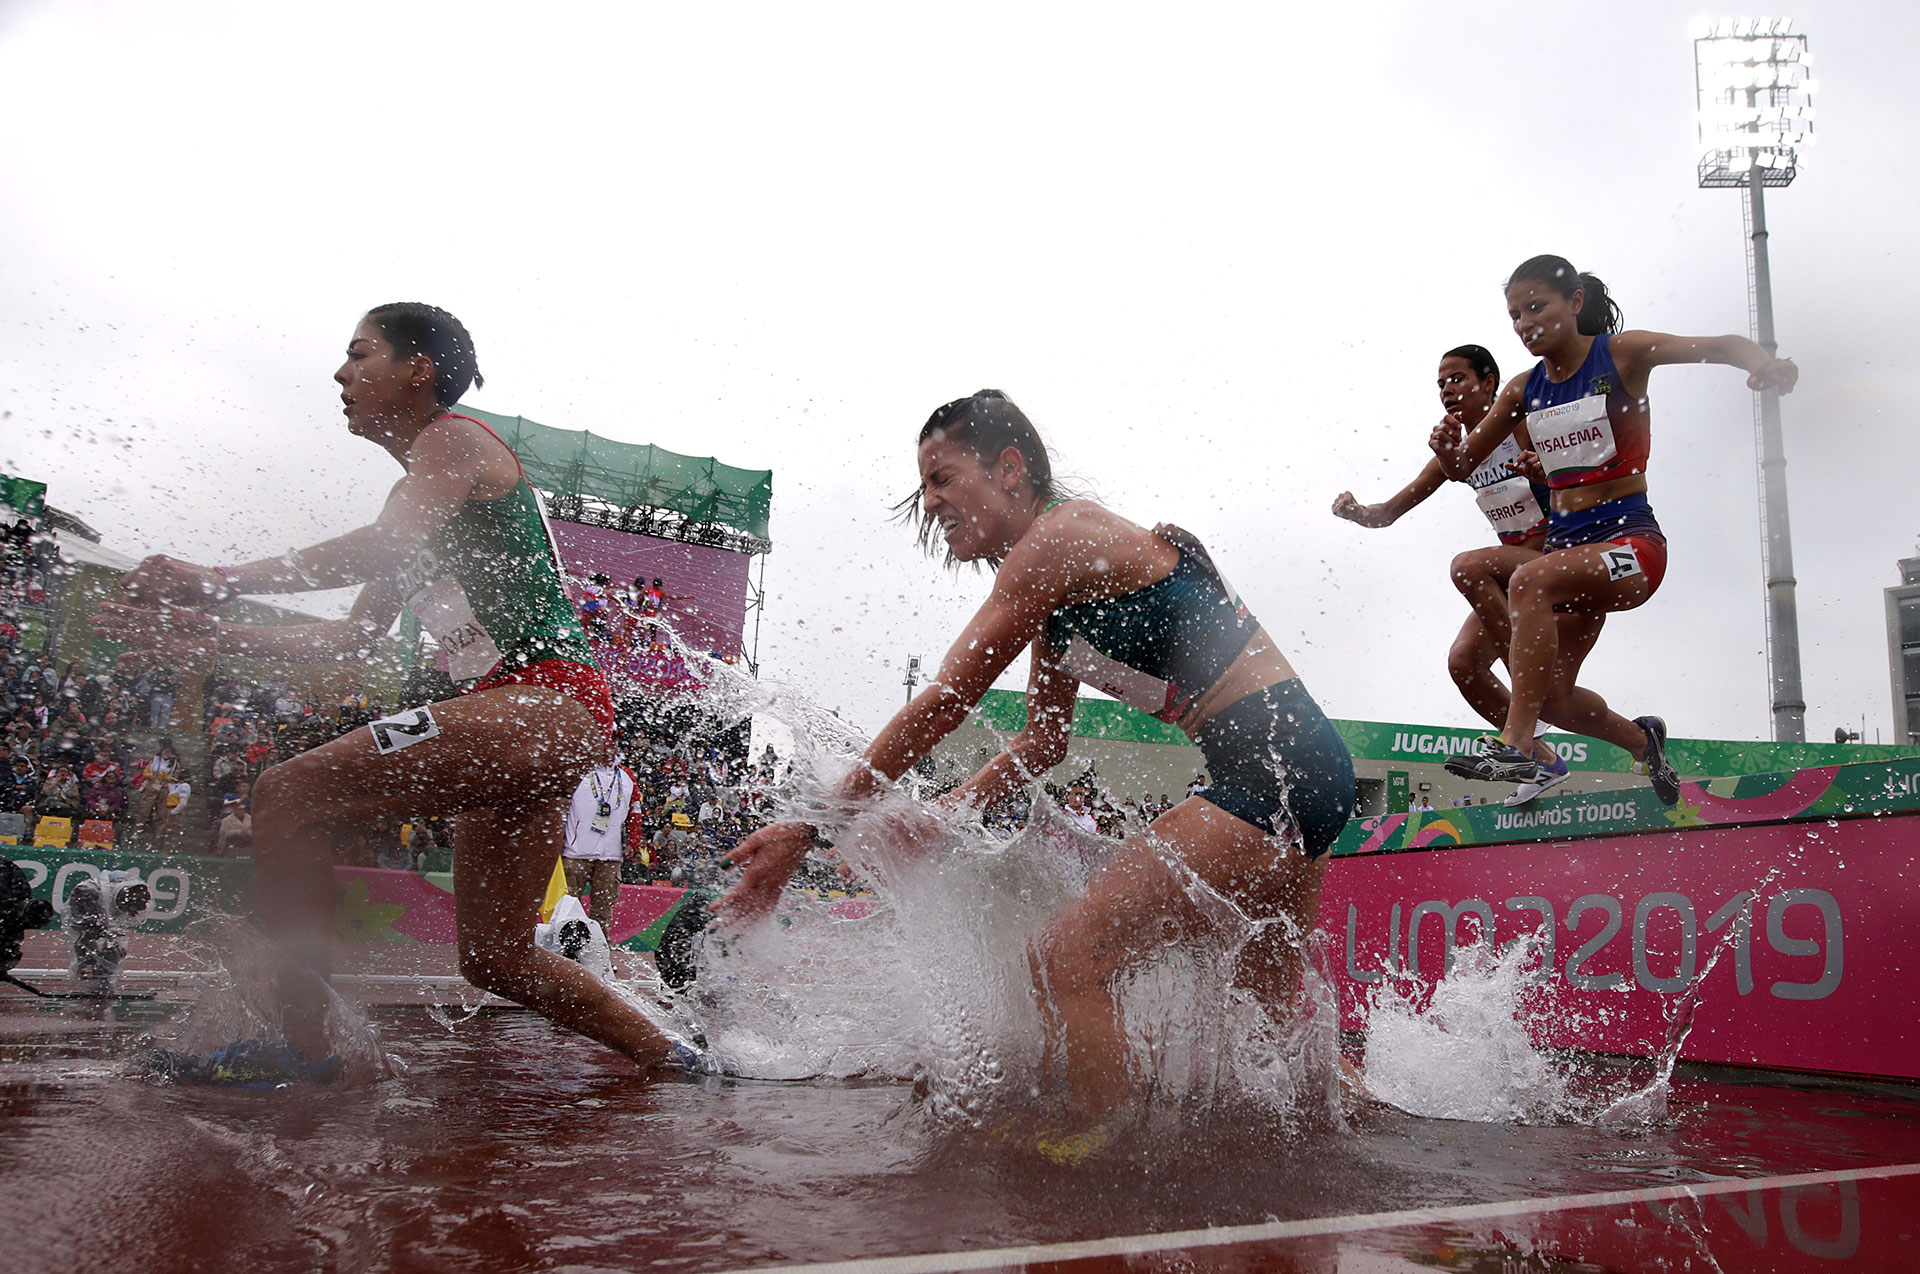 XVIII Pan American Games - Lima 2019 - Athletics - Women's 3000m Steeplechase Final - Athletics Stadium, Lima, Peru - August 10, 2019. Mexico's Natali Mendoza and Brazil's Simone Ponte in action. REUTERS/Henry Romero     TPX IMAGES OF THE DAY